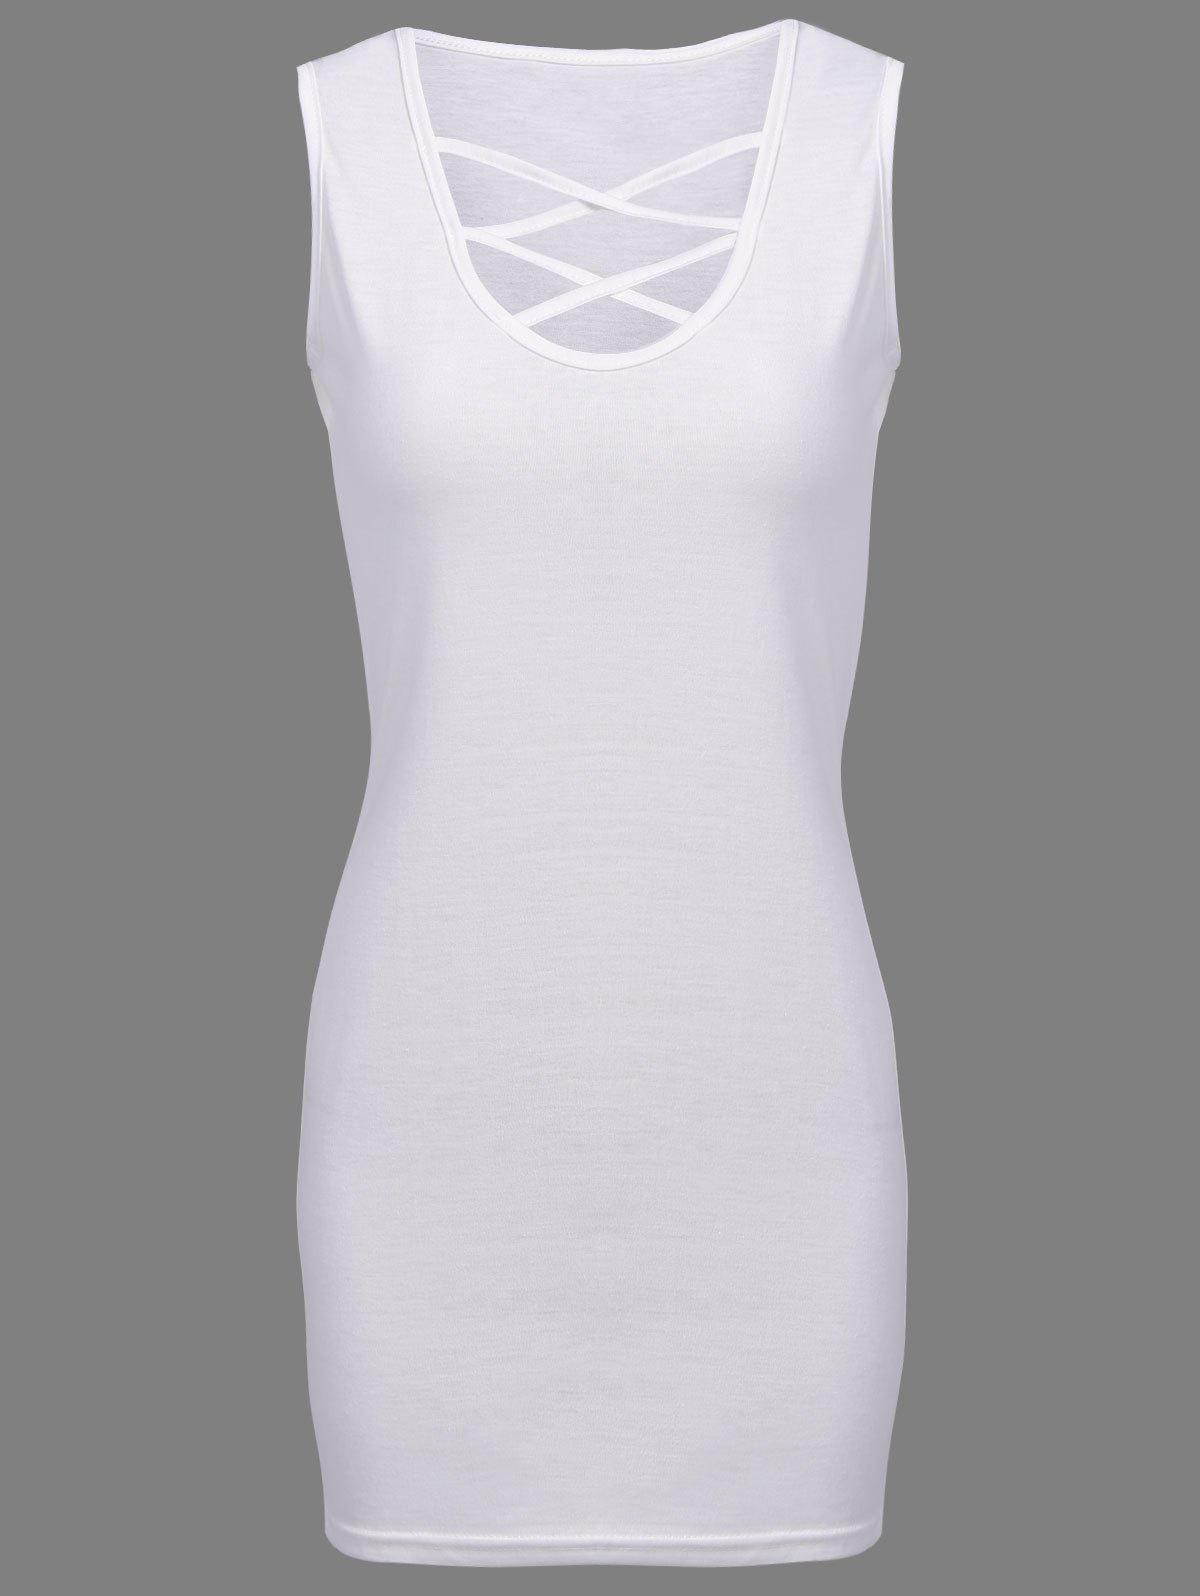 Elegant Plunging Neck Sleeveless Sheathy Criss-Cross Solid Color Women's Dress - WHITE L